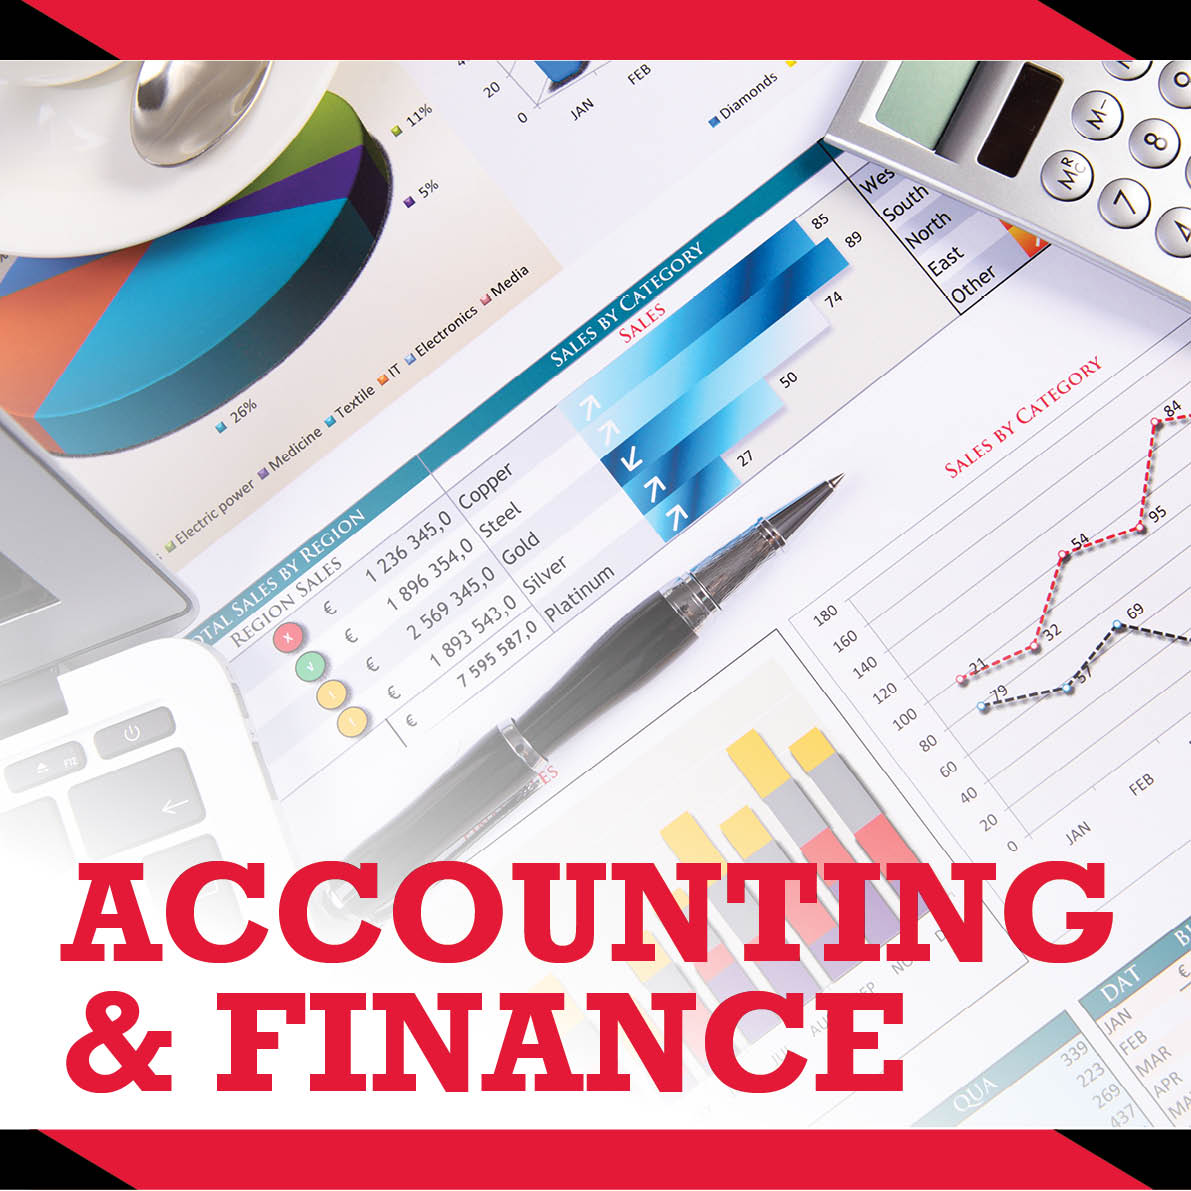 Recognized Accounting & Finance Course in Singapore| TMC Academy